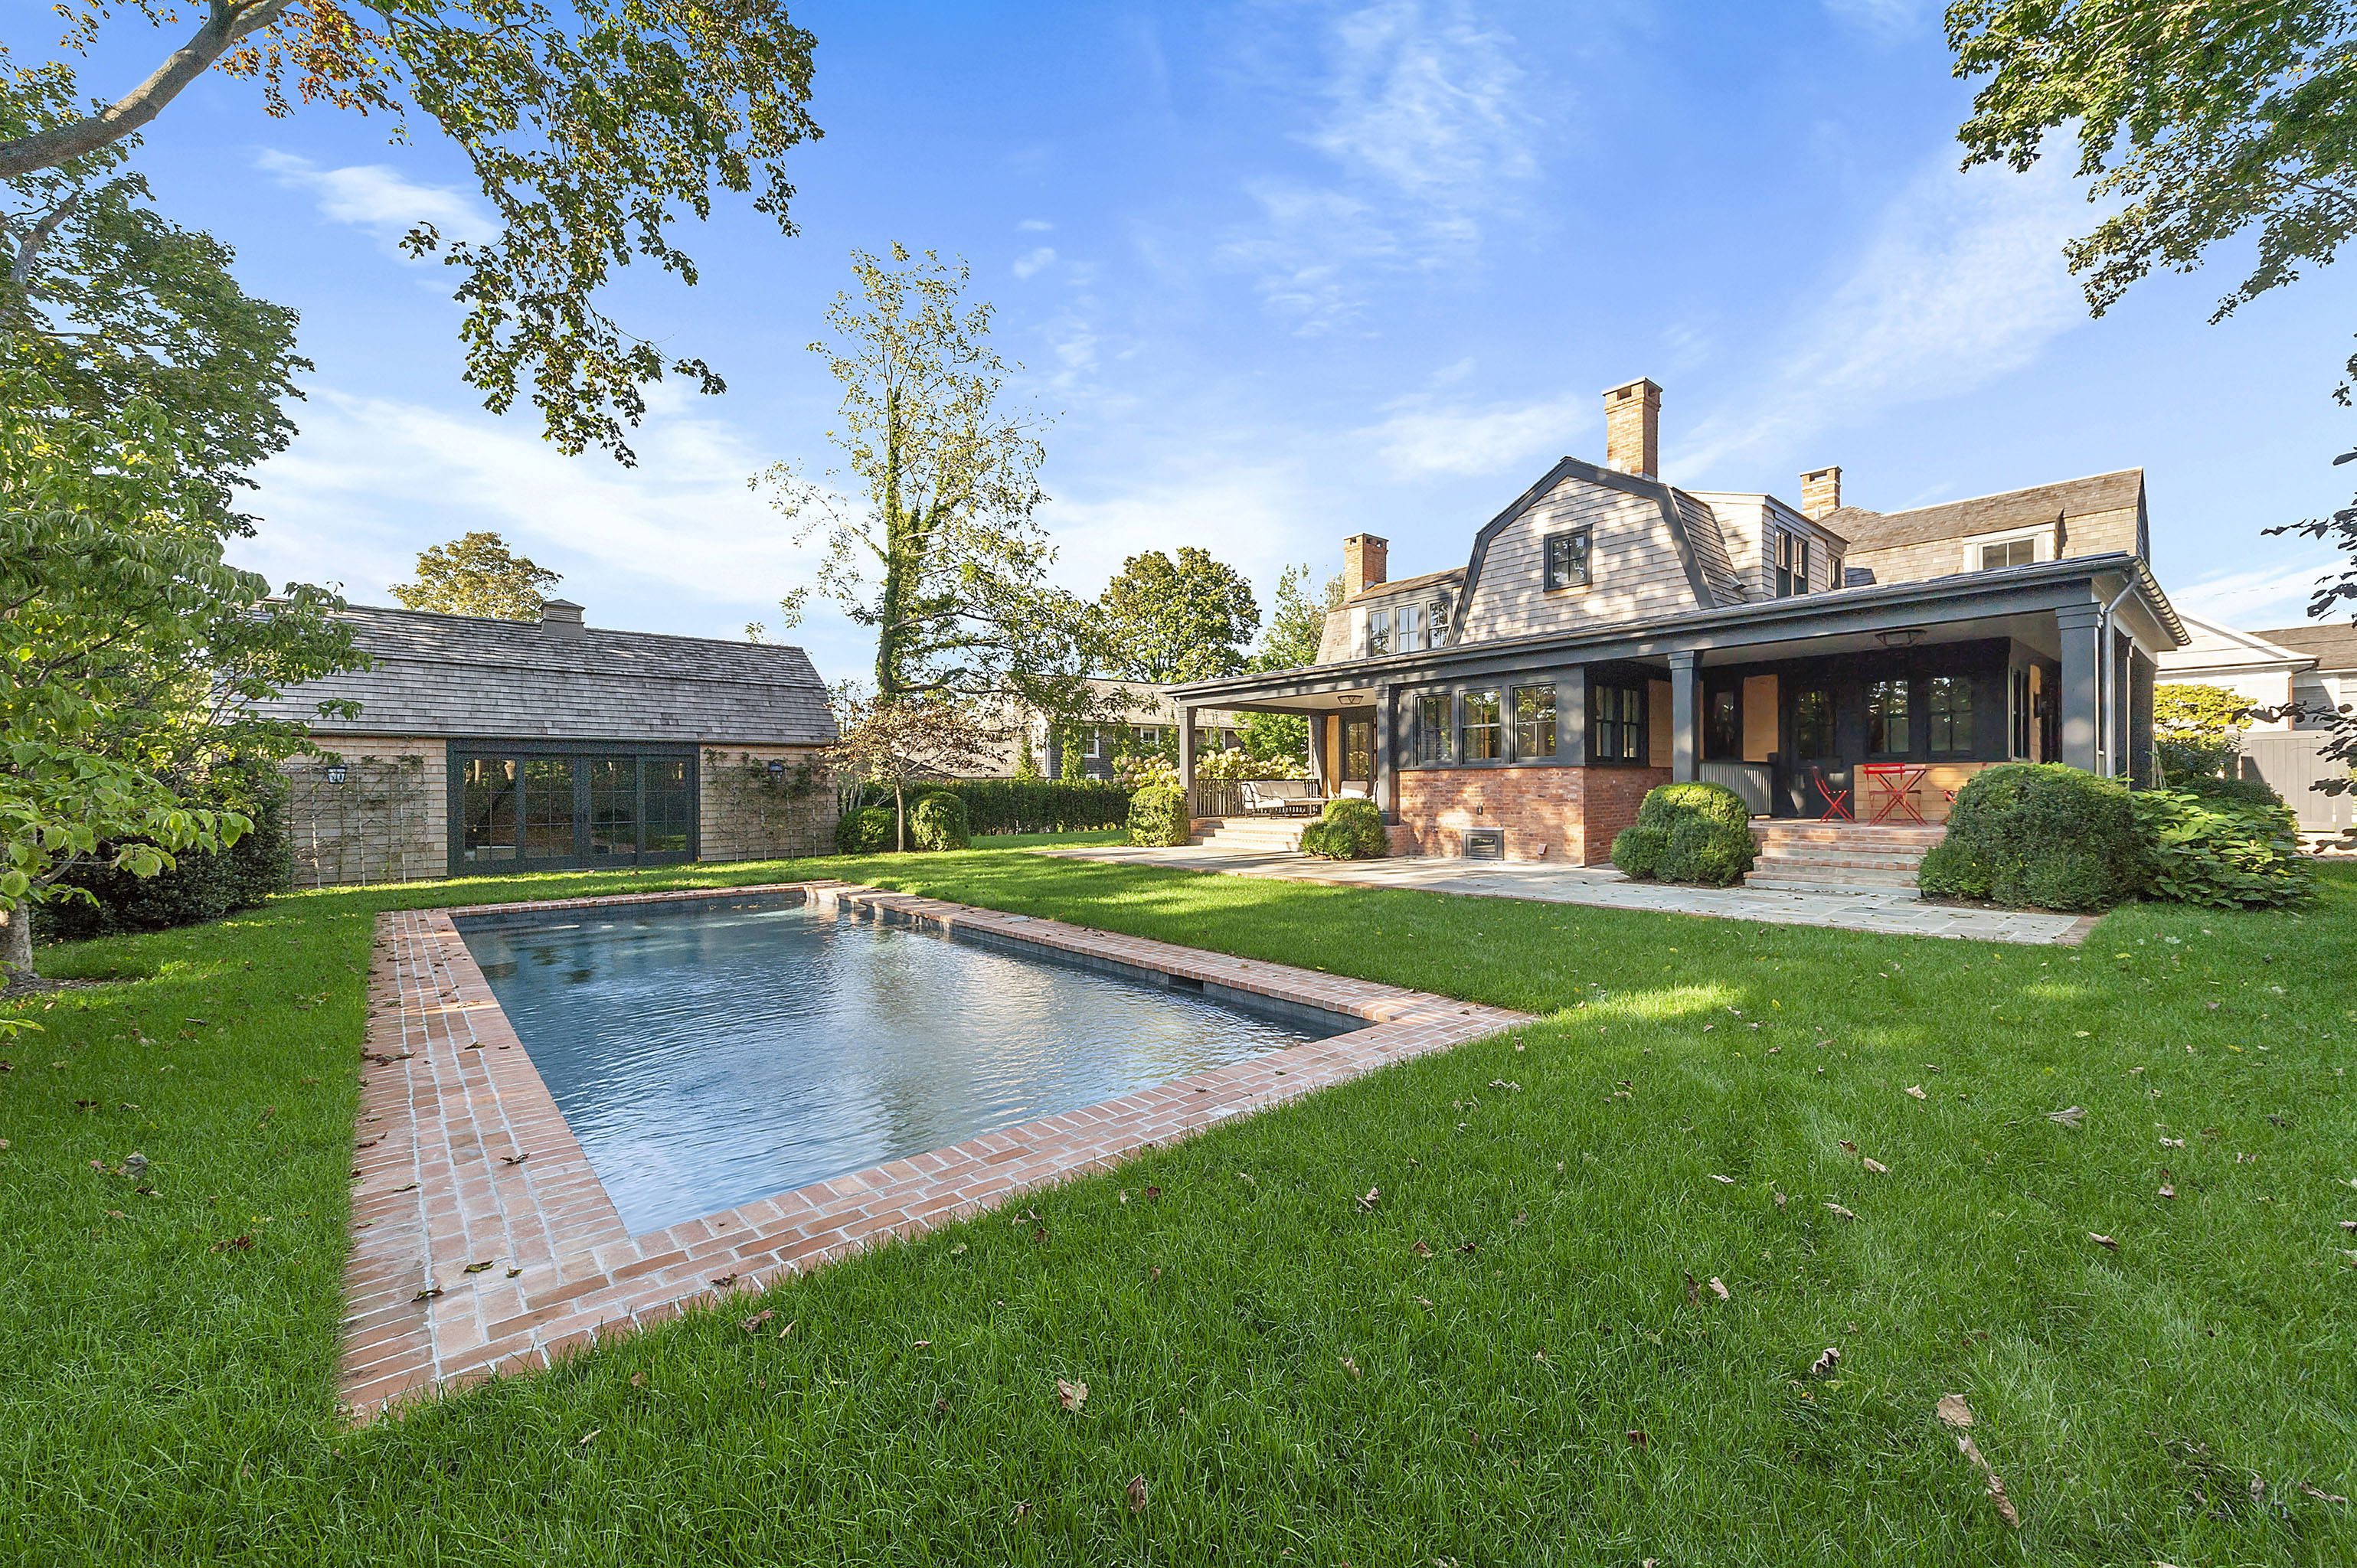 Retail Tycoon Lists Another of His Hamptons Homes for Sale